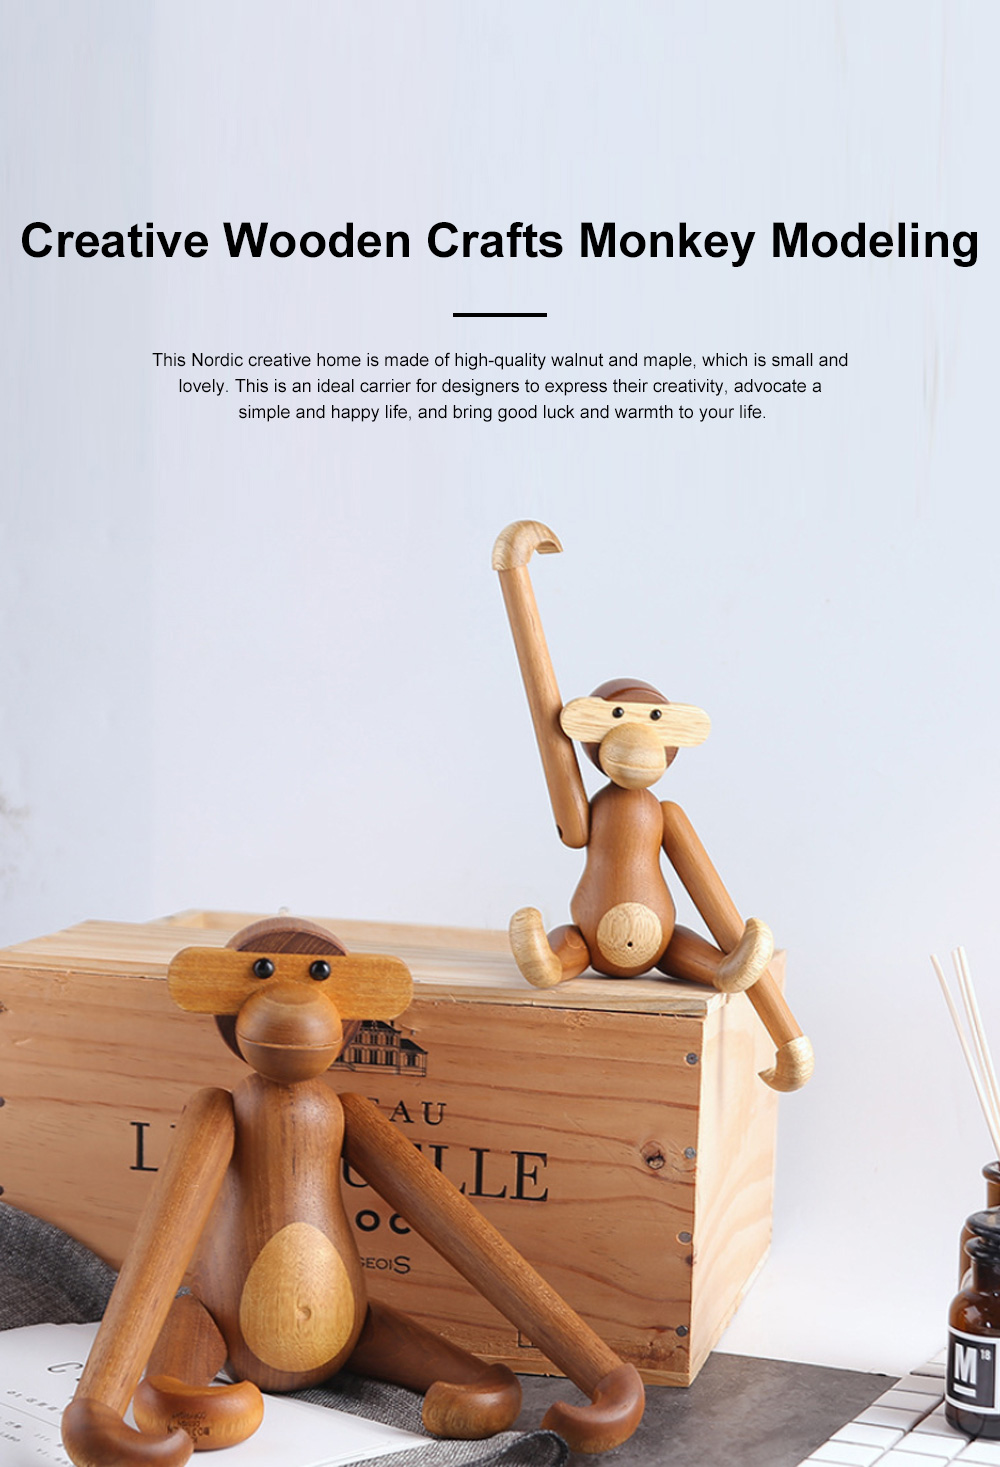 Creative Wooden Crafts Monkey Modeling Ornament Puppet Monkey Rotatable Head Limbs Nordic Denmark Teak Gift Ornament 0